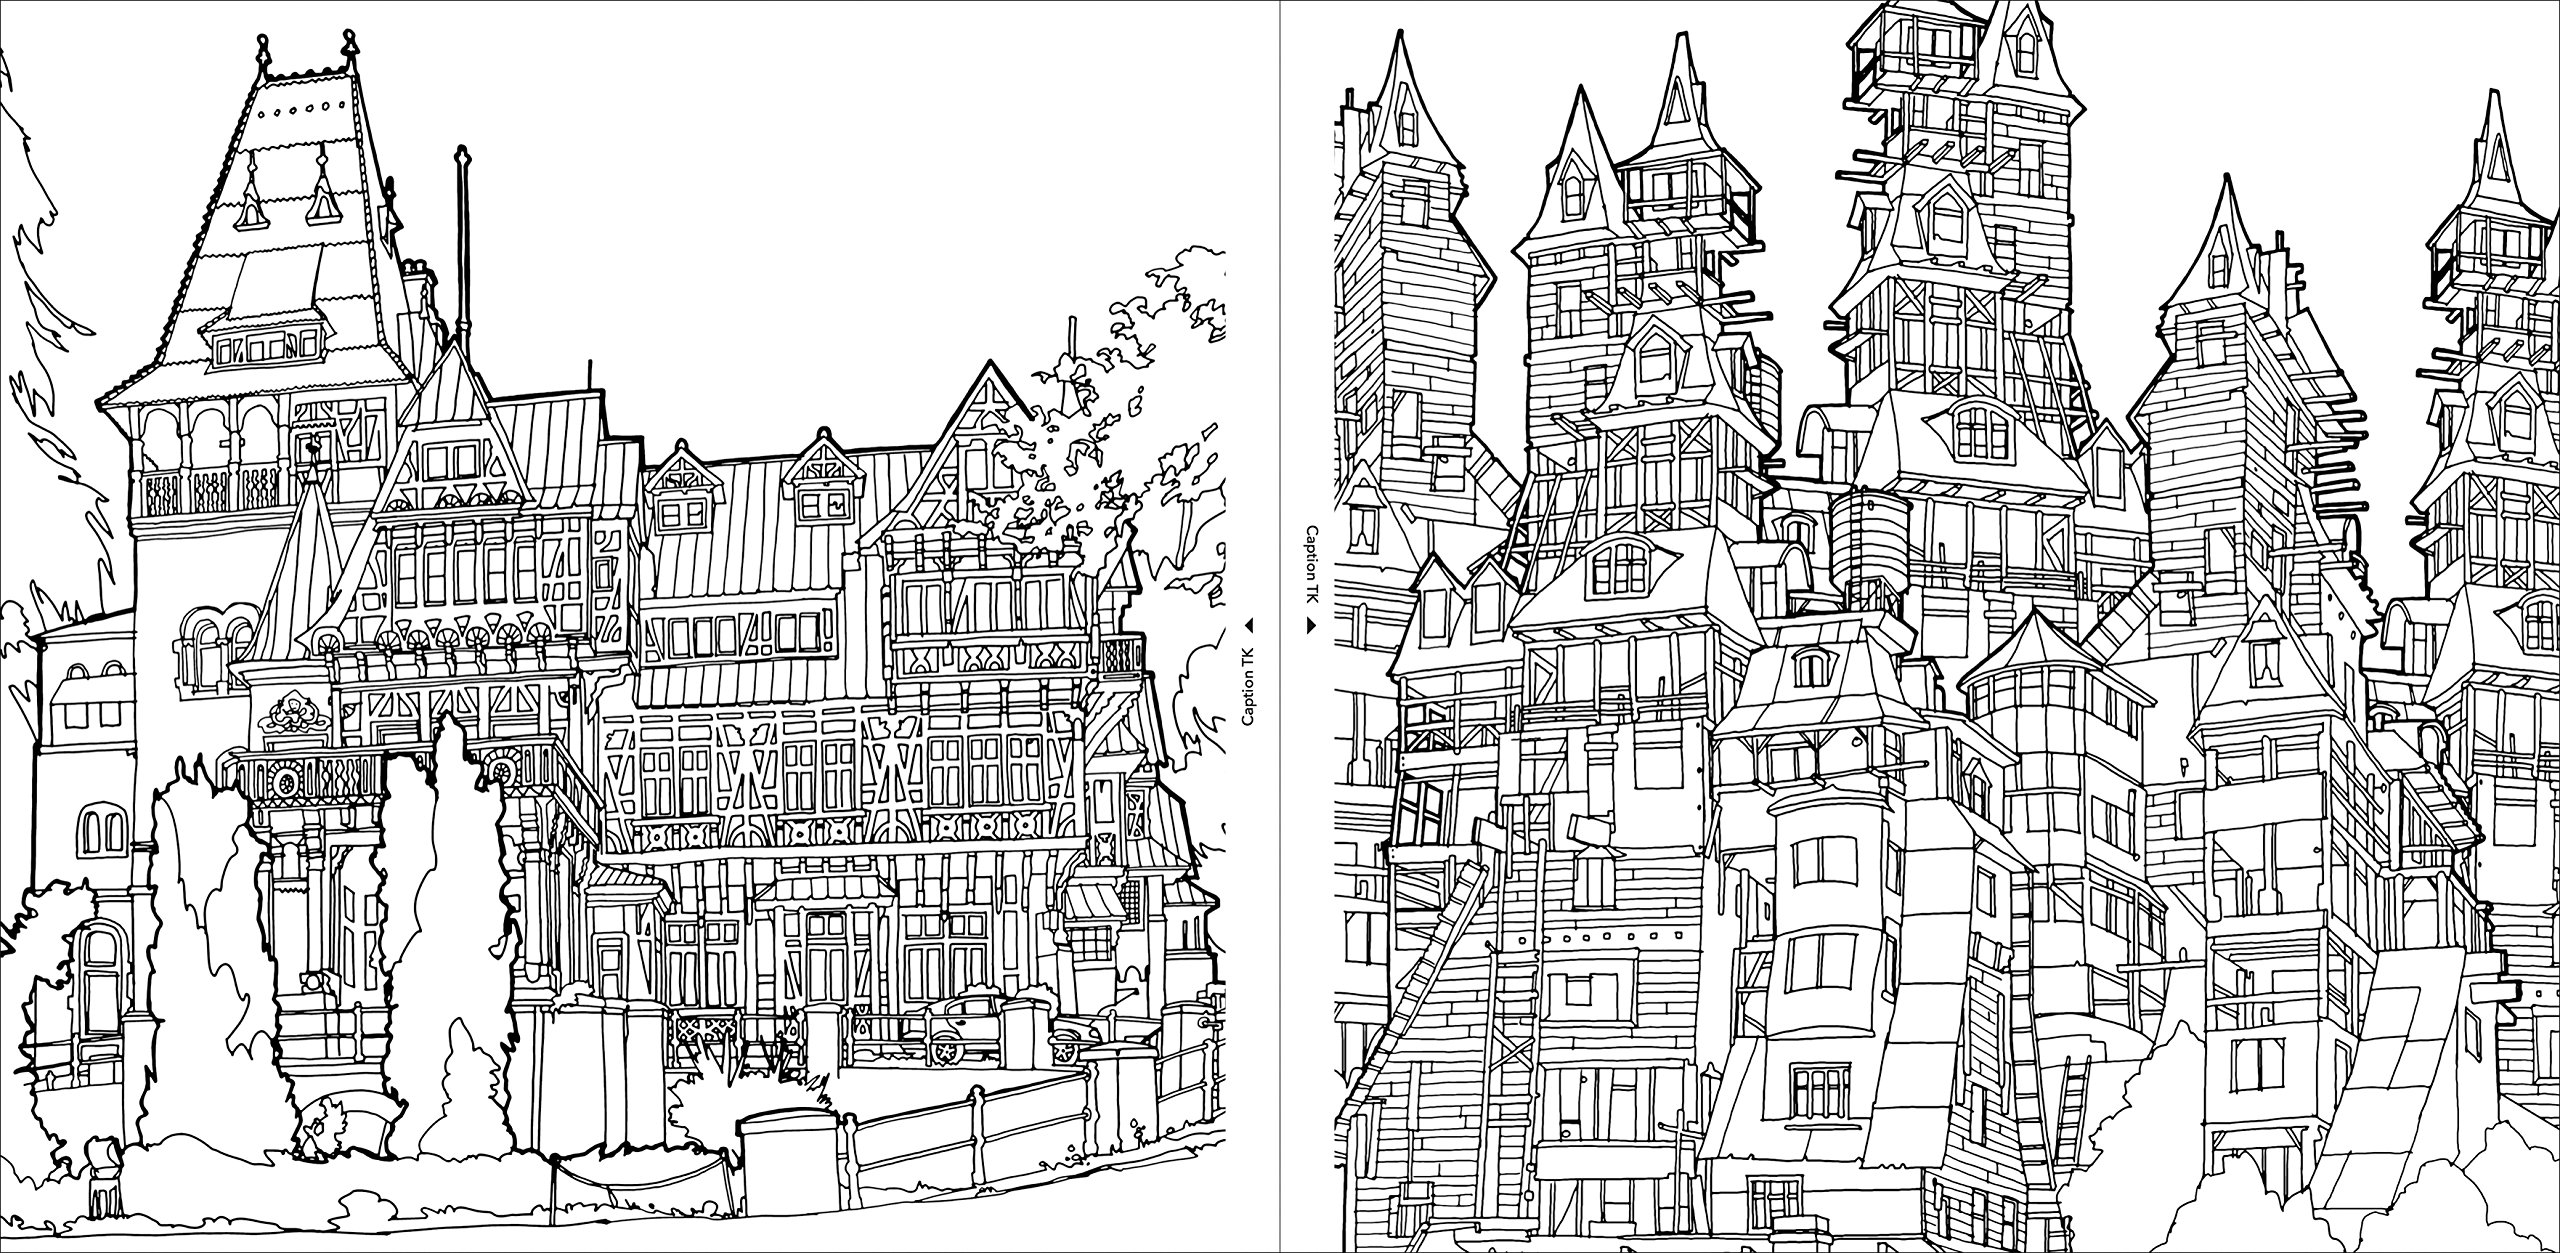 Fantastic Structures A Coloring Book of Amazing Buildings Real